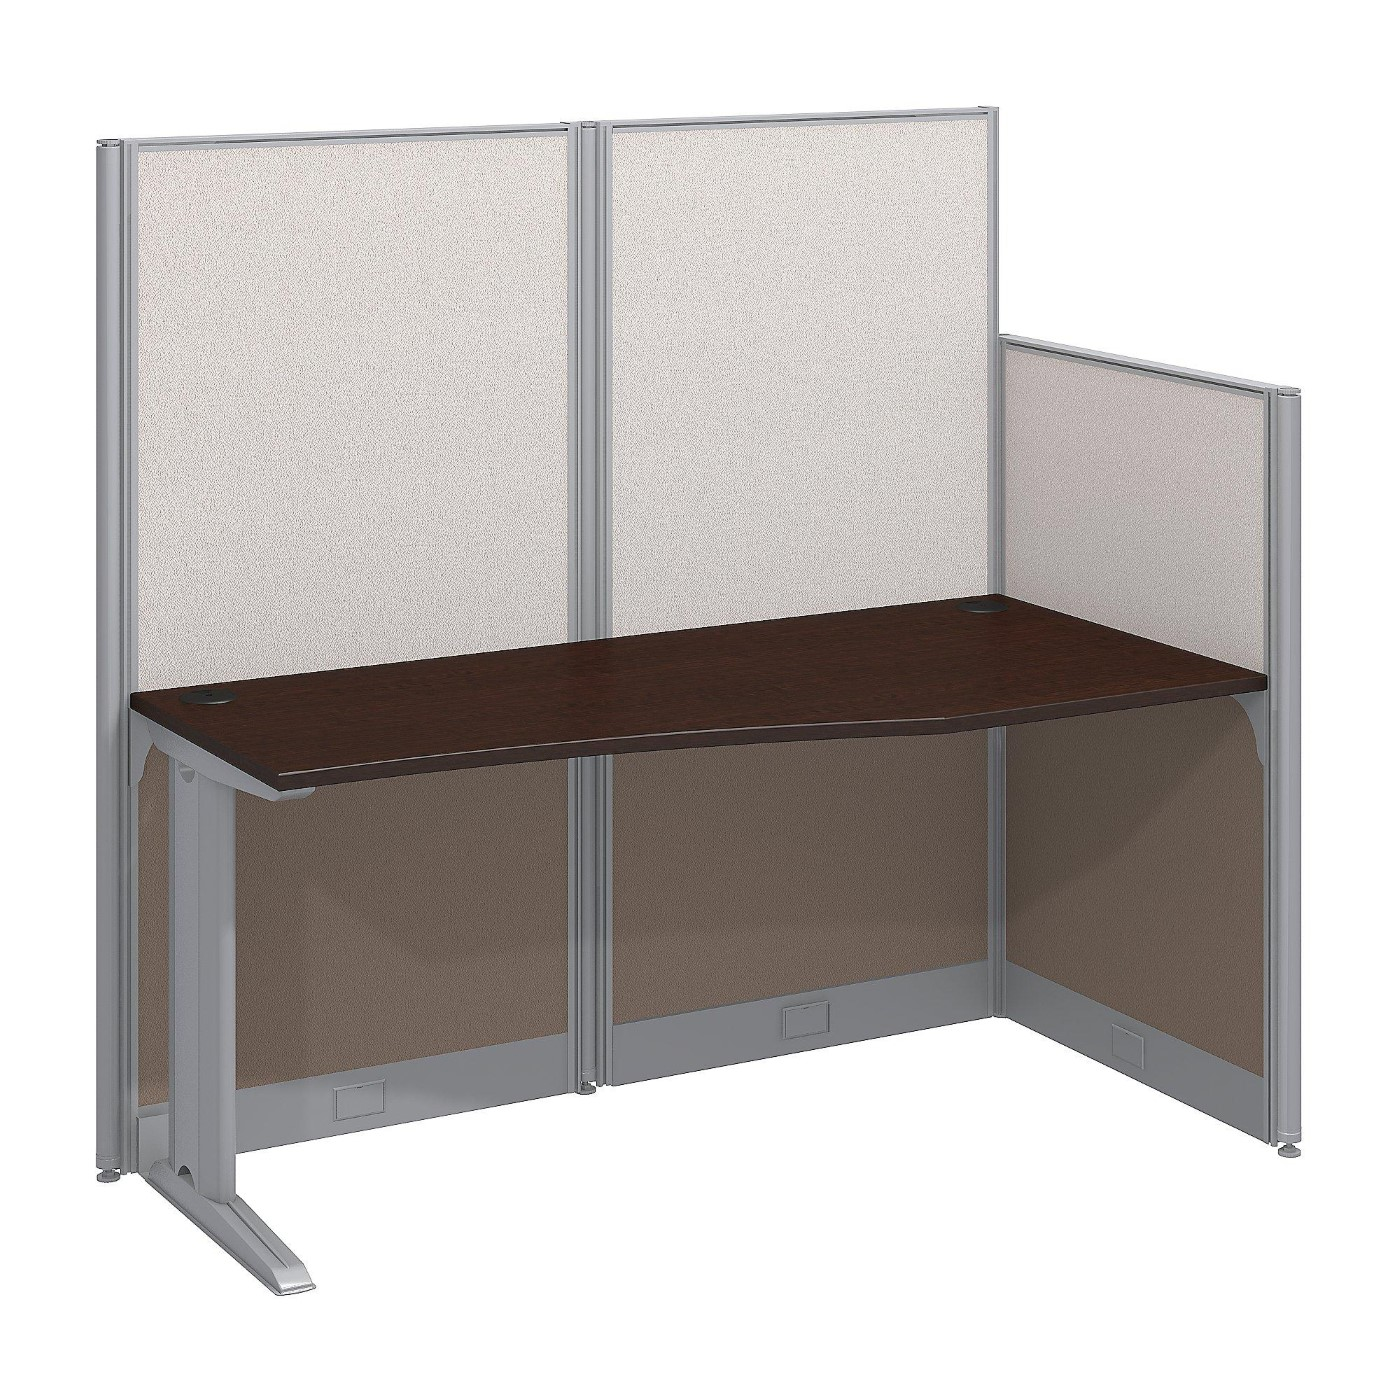 BUSH BUSINESS FURNITURE OFFICE IN AN HOUR 65W X 33D CUBICLE WORKSTATION. FREE SHIPPING  VIDEO BELOW.  SALE DEDUCT 10% MORE ENTER '10percent' IN COUPON CODE BOX WHILE CHECKING OUT. ENDS 5-31-20.